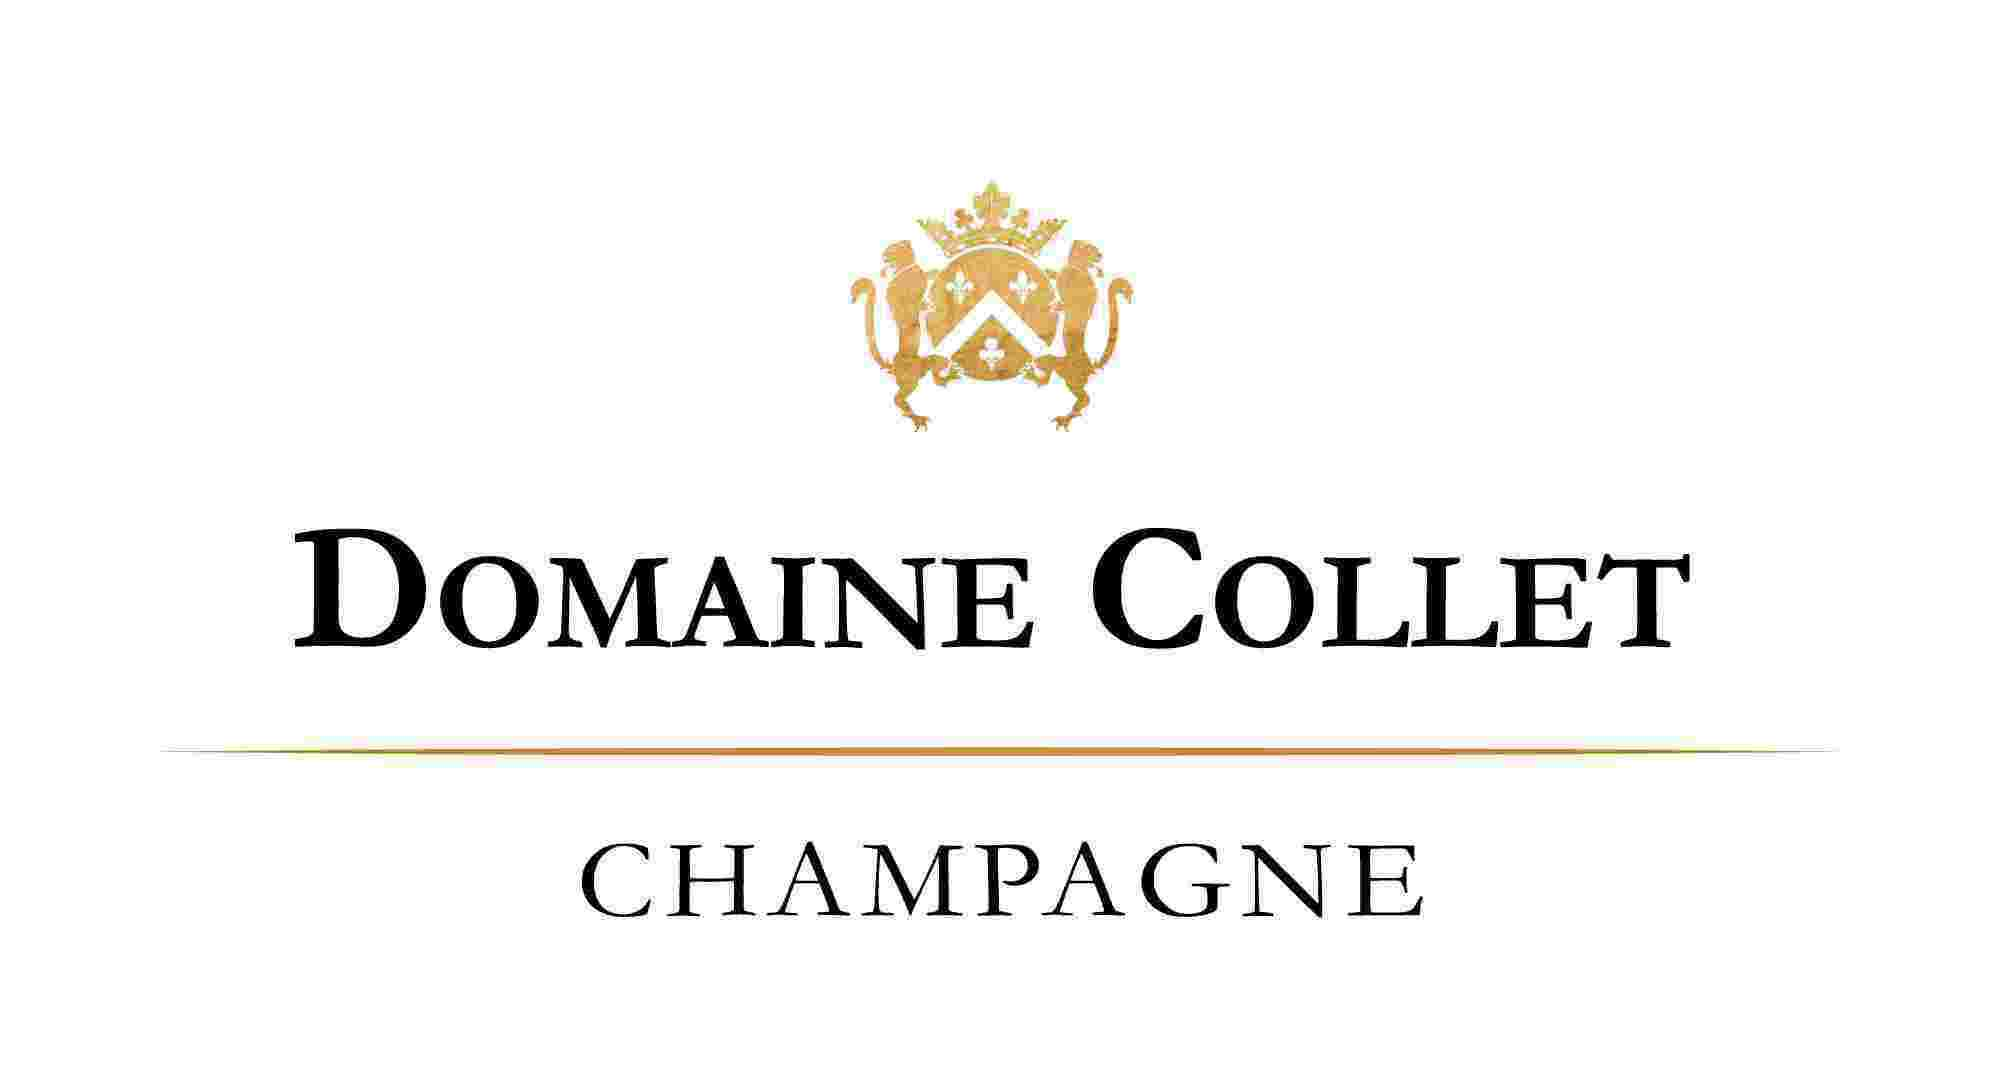 Domaine Collet Champagne